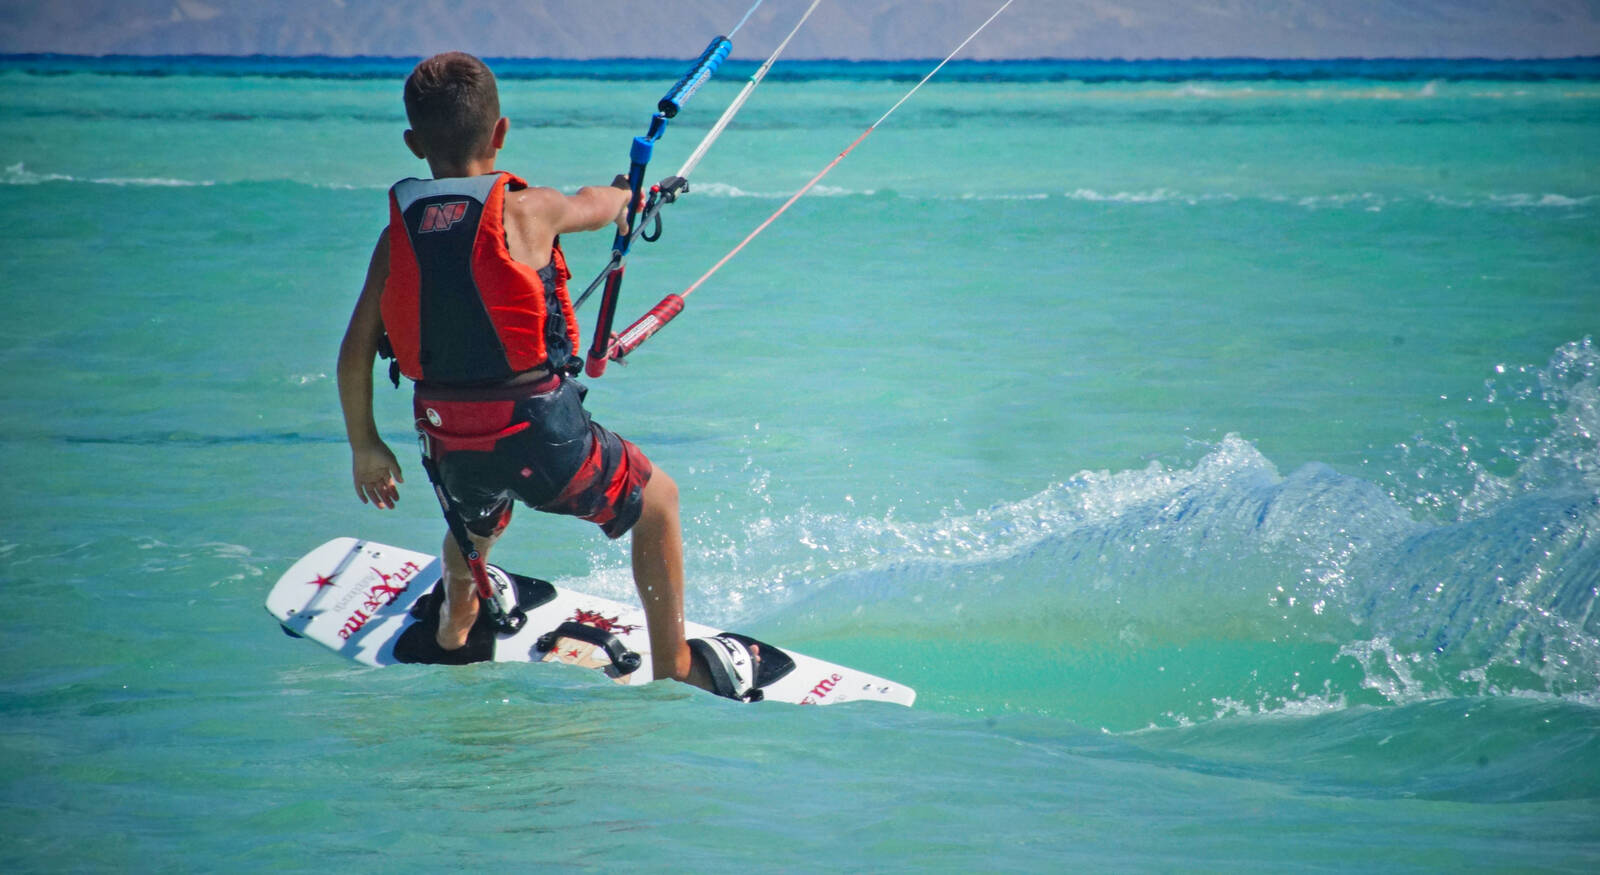 Osmosis Kiteboarding: Kite Kids